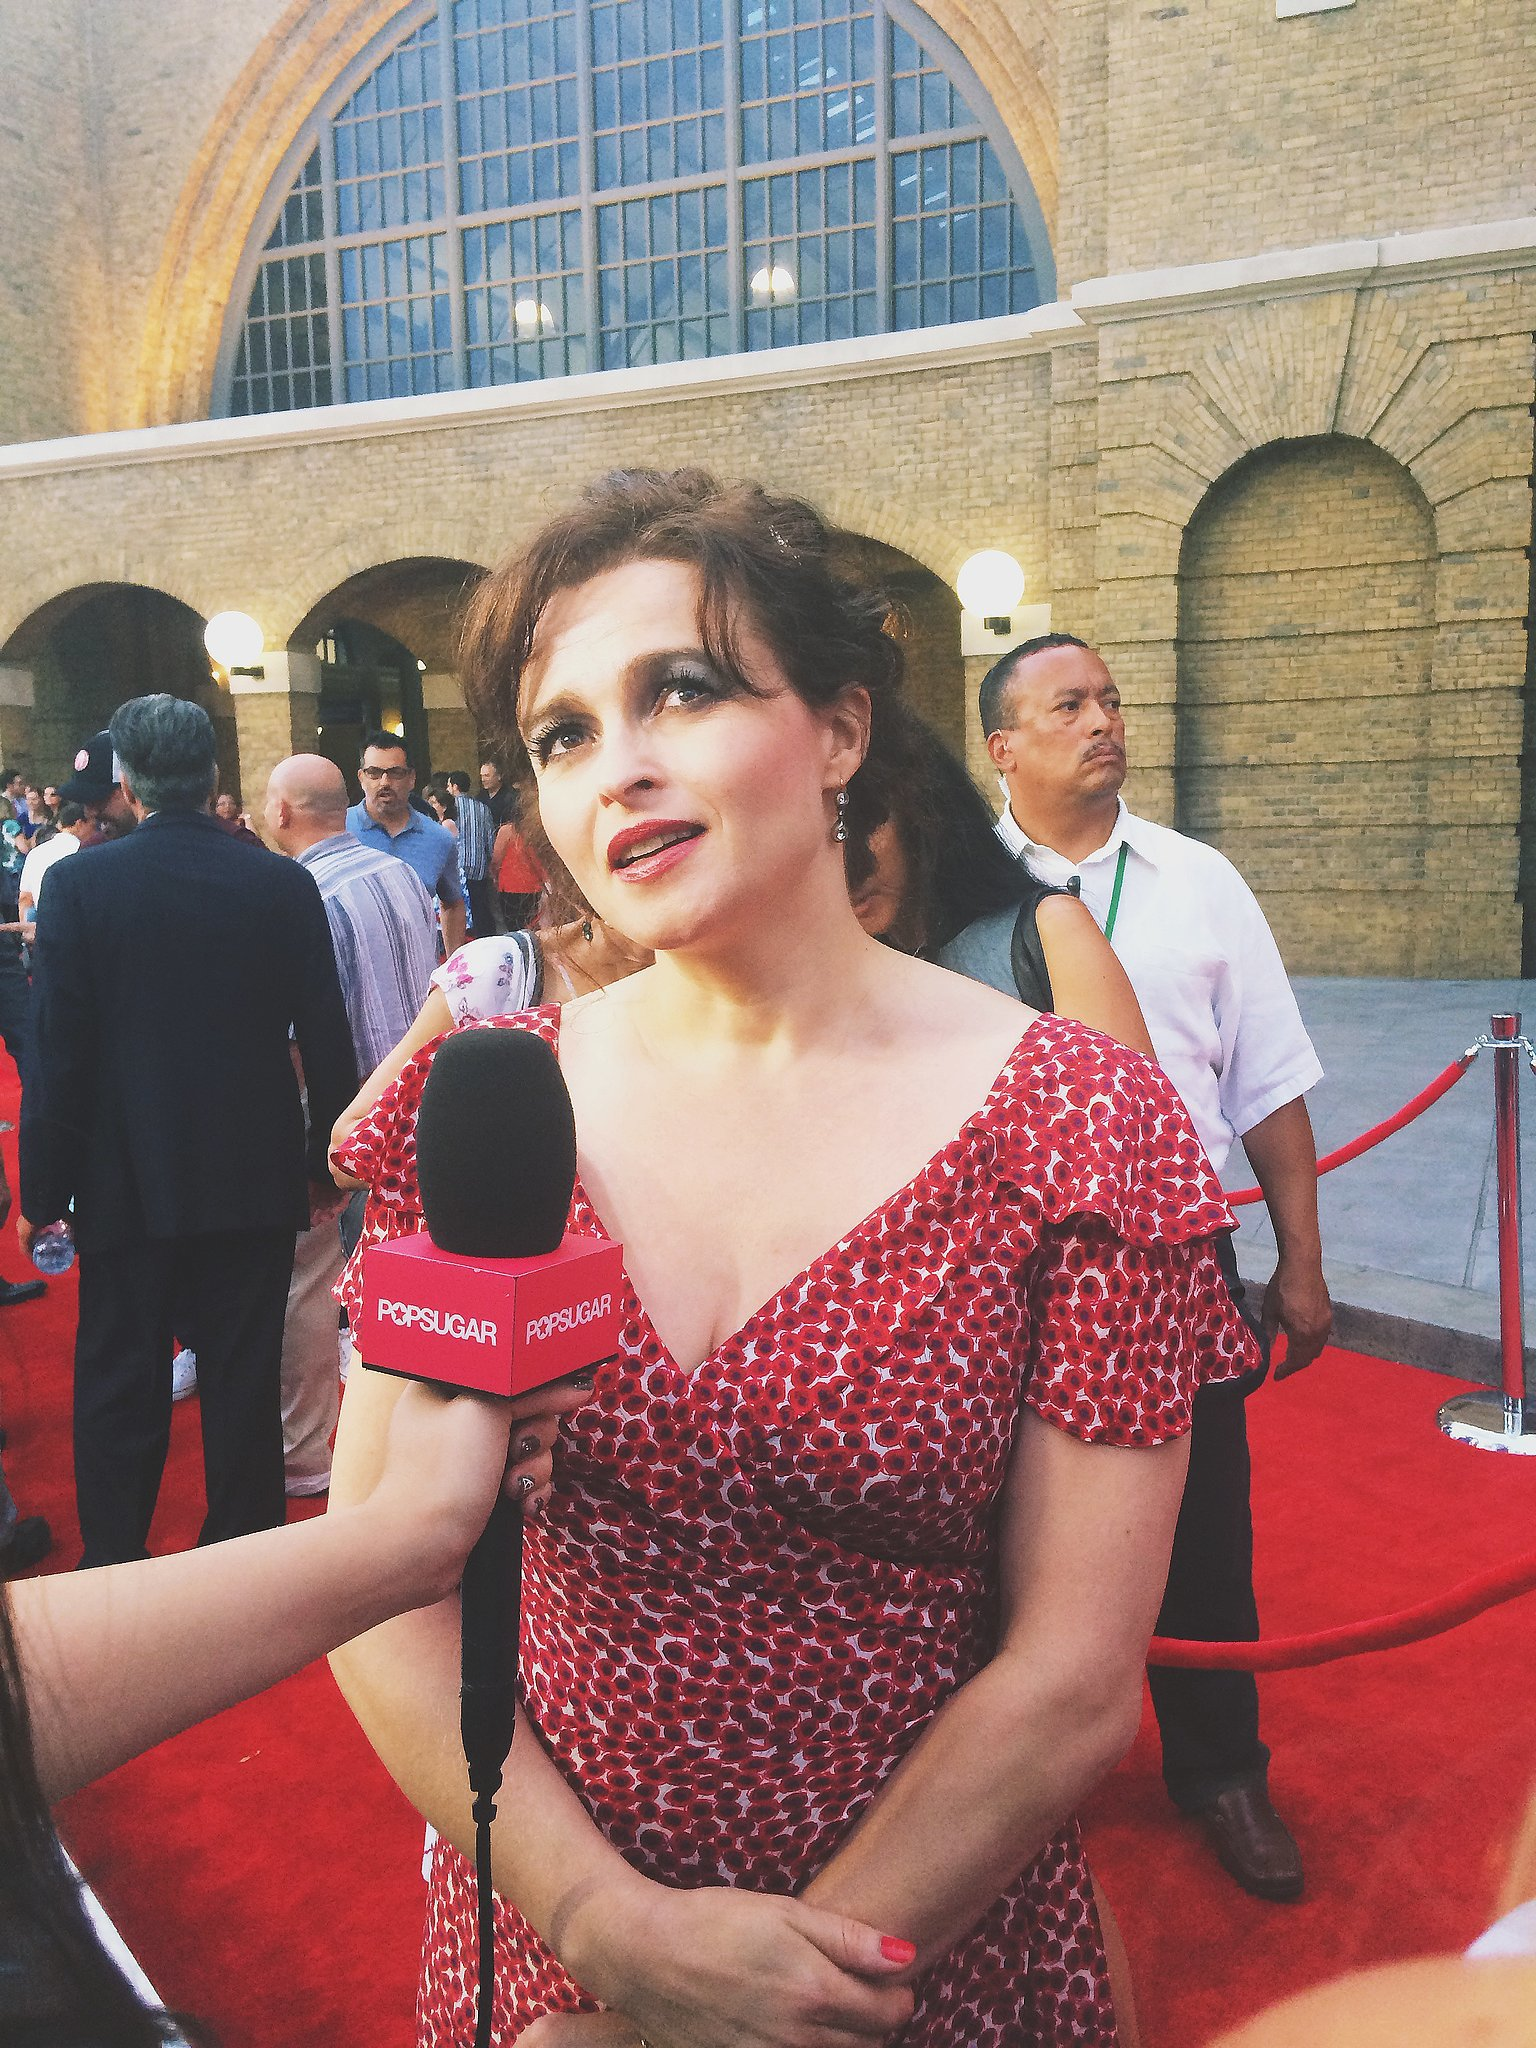 Helena Bonham Carter is a goddess, and she was radiant as always on the red carpet. She is much nicer (thankfully) than her evil onscreen